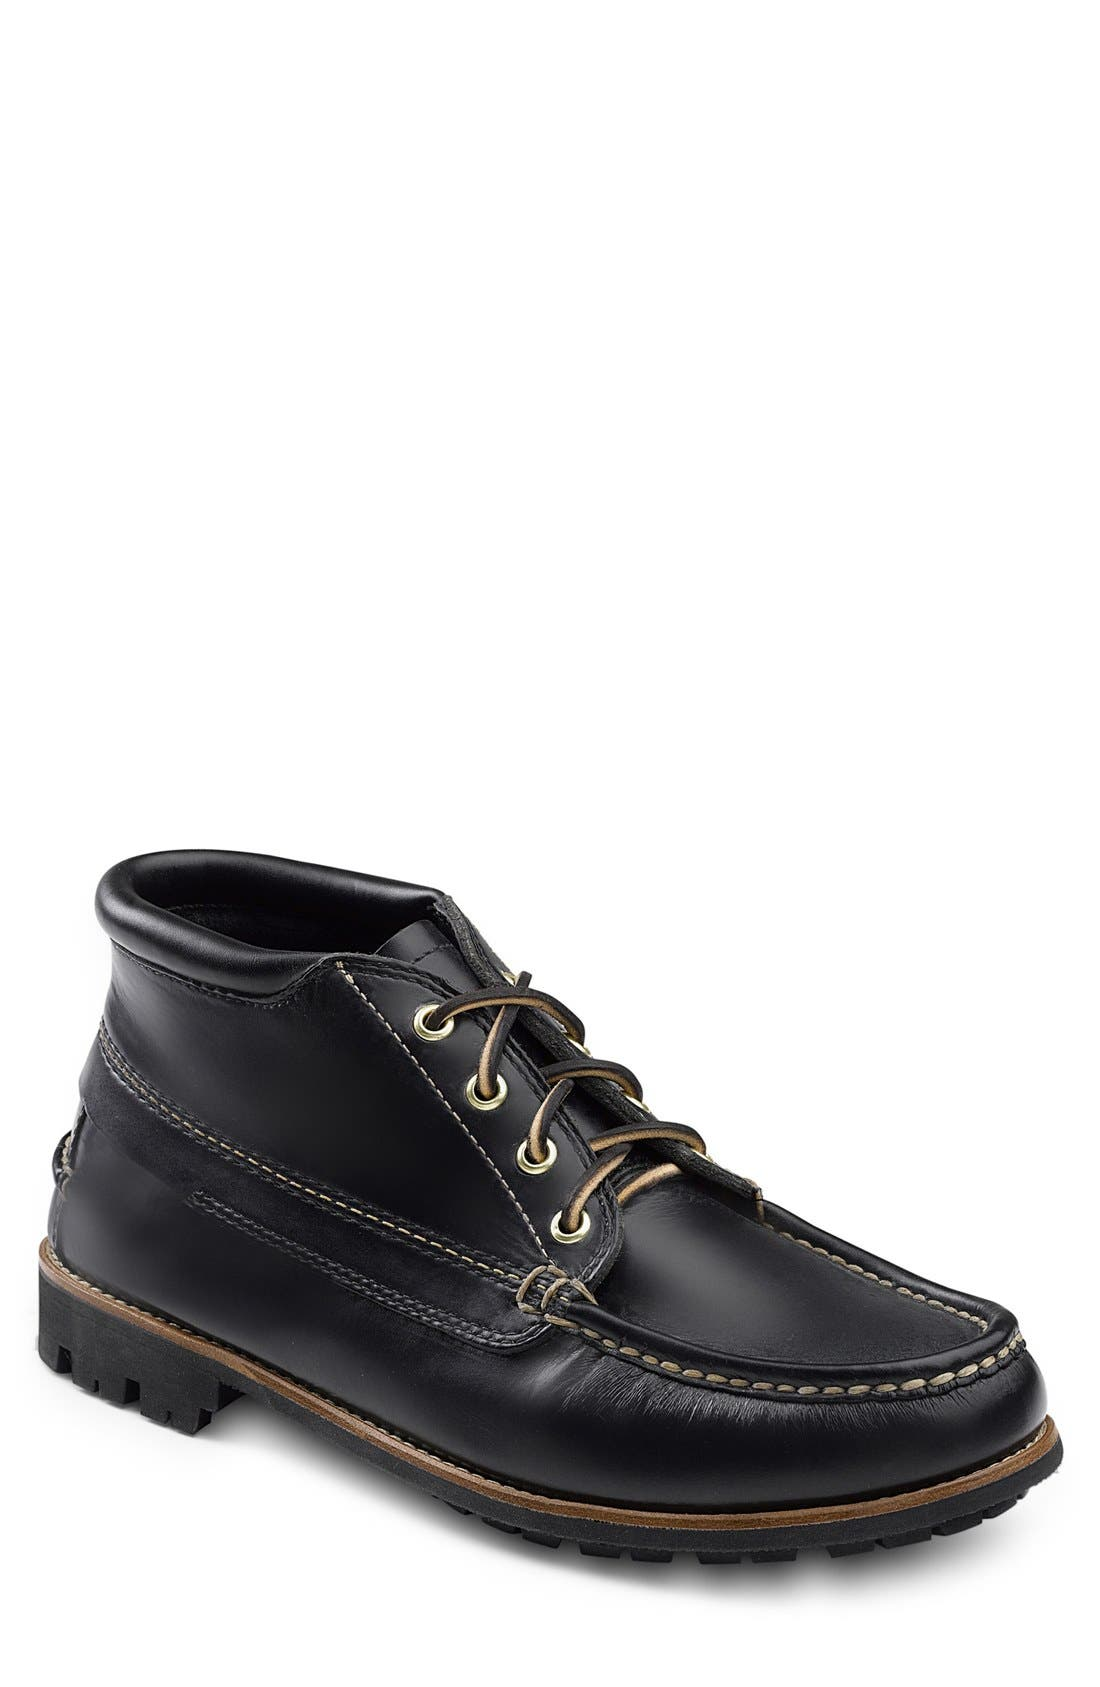 'Abbott' Chukka Boot,                         Main,                         color,